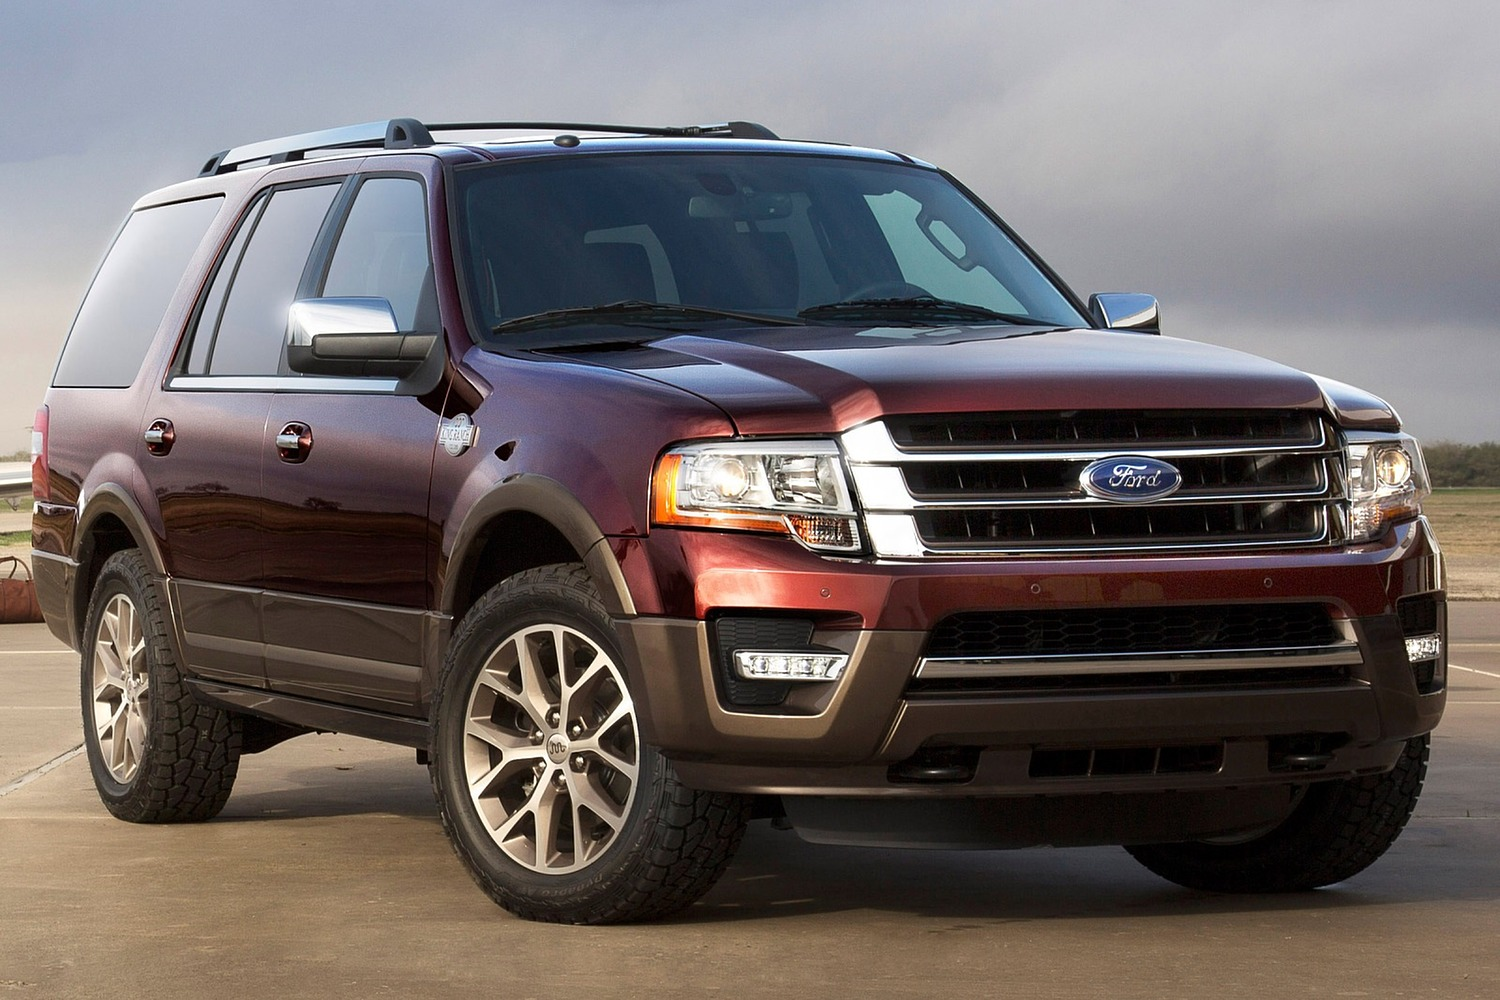 2017 Ford Expedition King Ranch 4dr SUV Exterior Shown